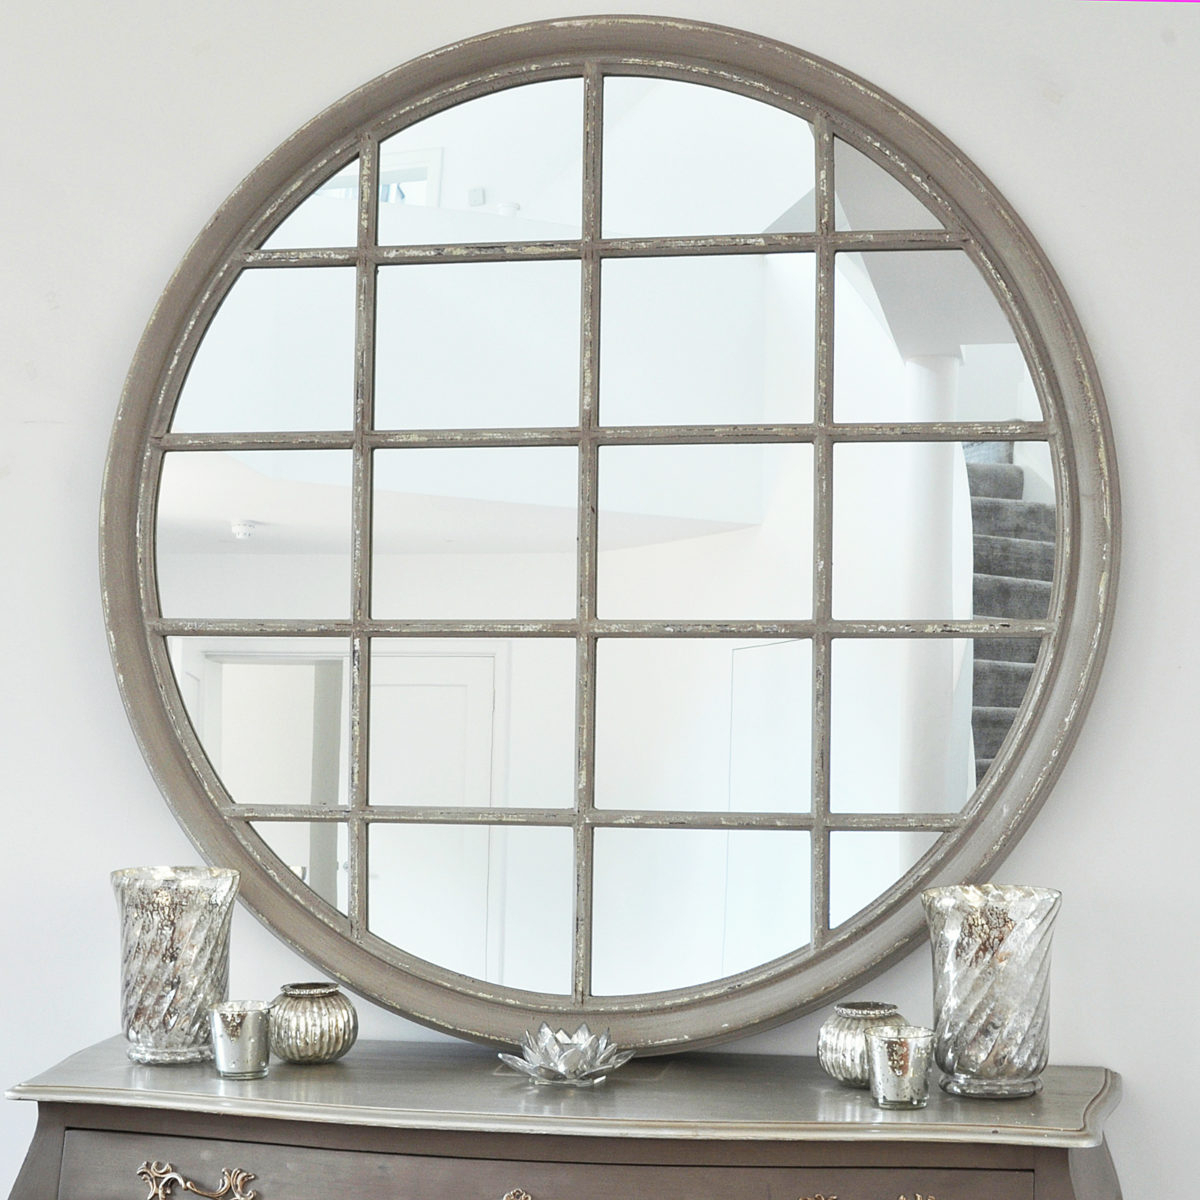 Large Wooden Wall Mirrors Throughout Best And Newest Large Round Grey Window Wall Mirror (View 13 of 20)